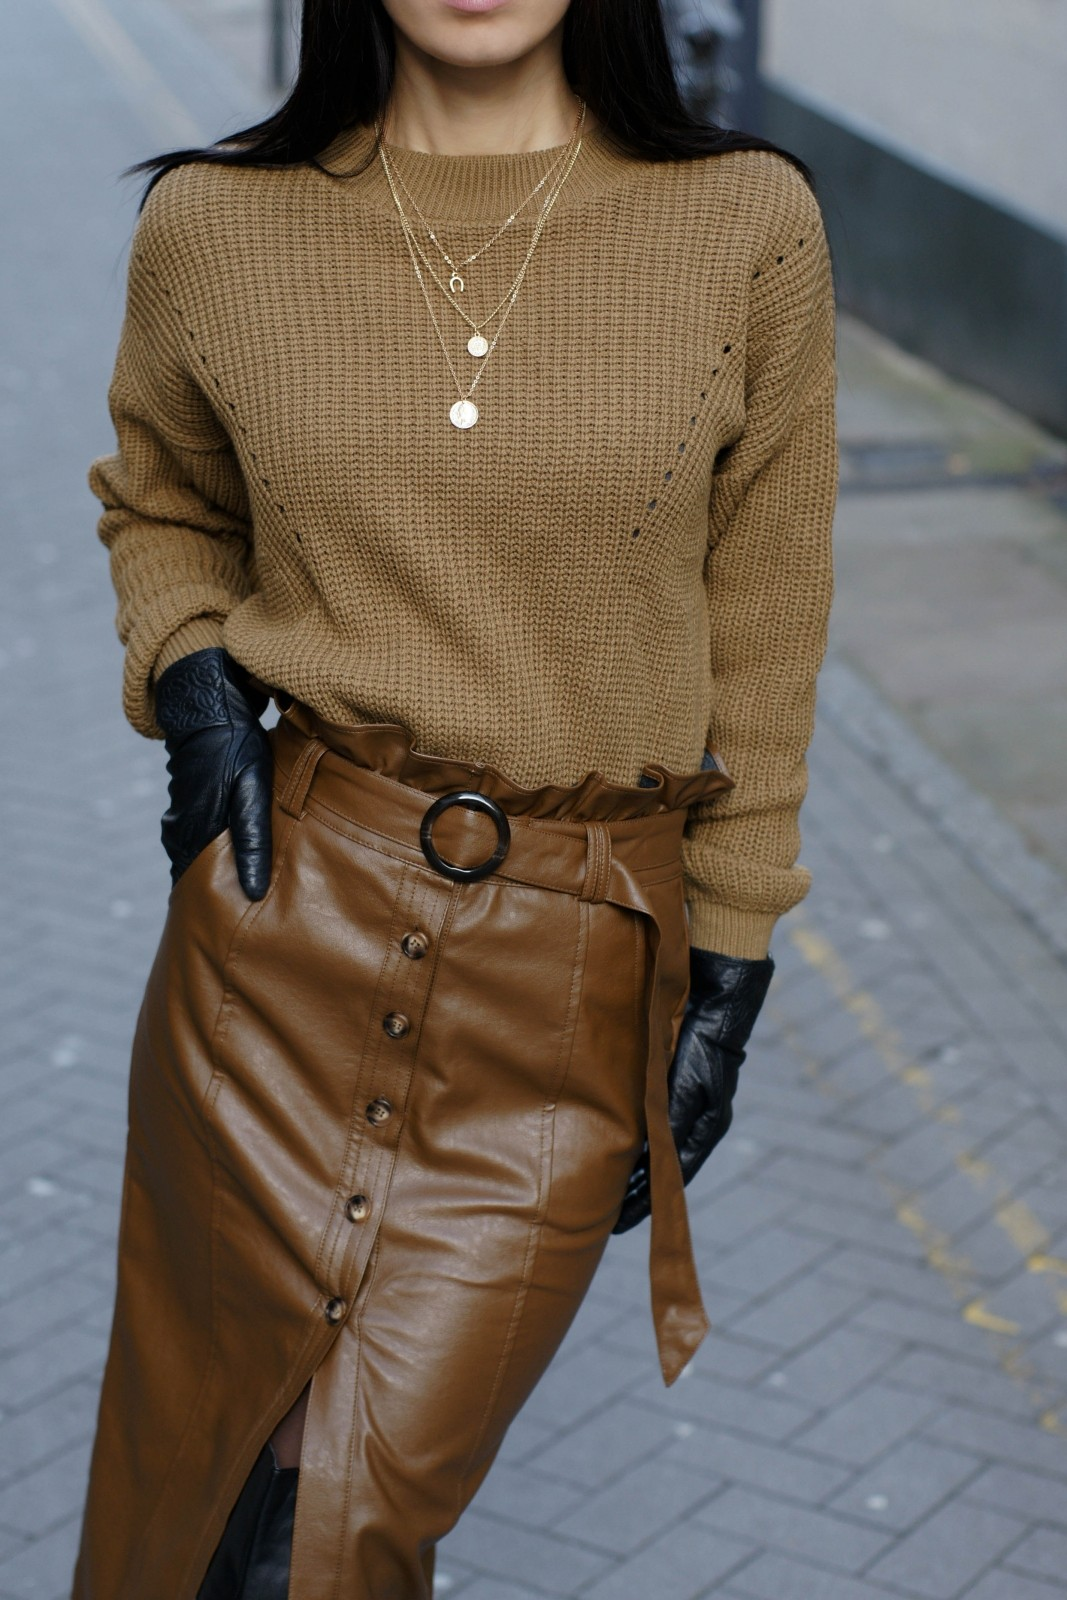 How To Style A Leather Pencil Skirt